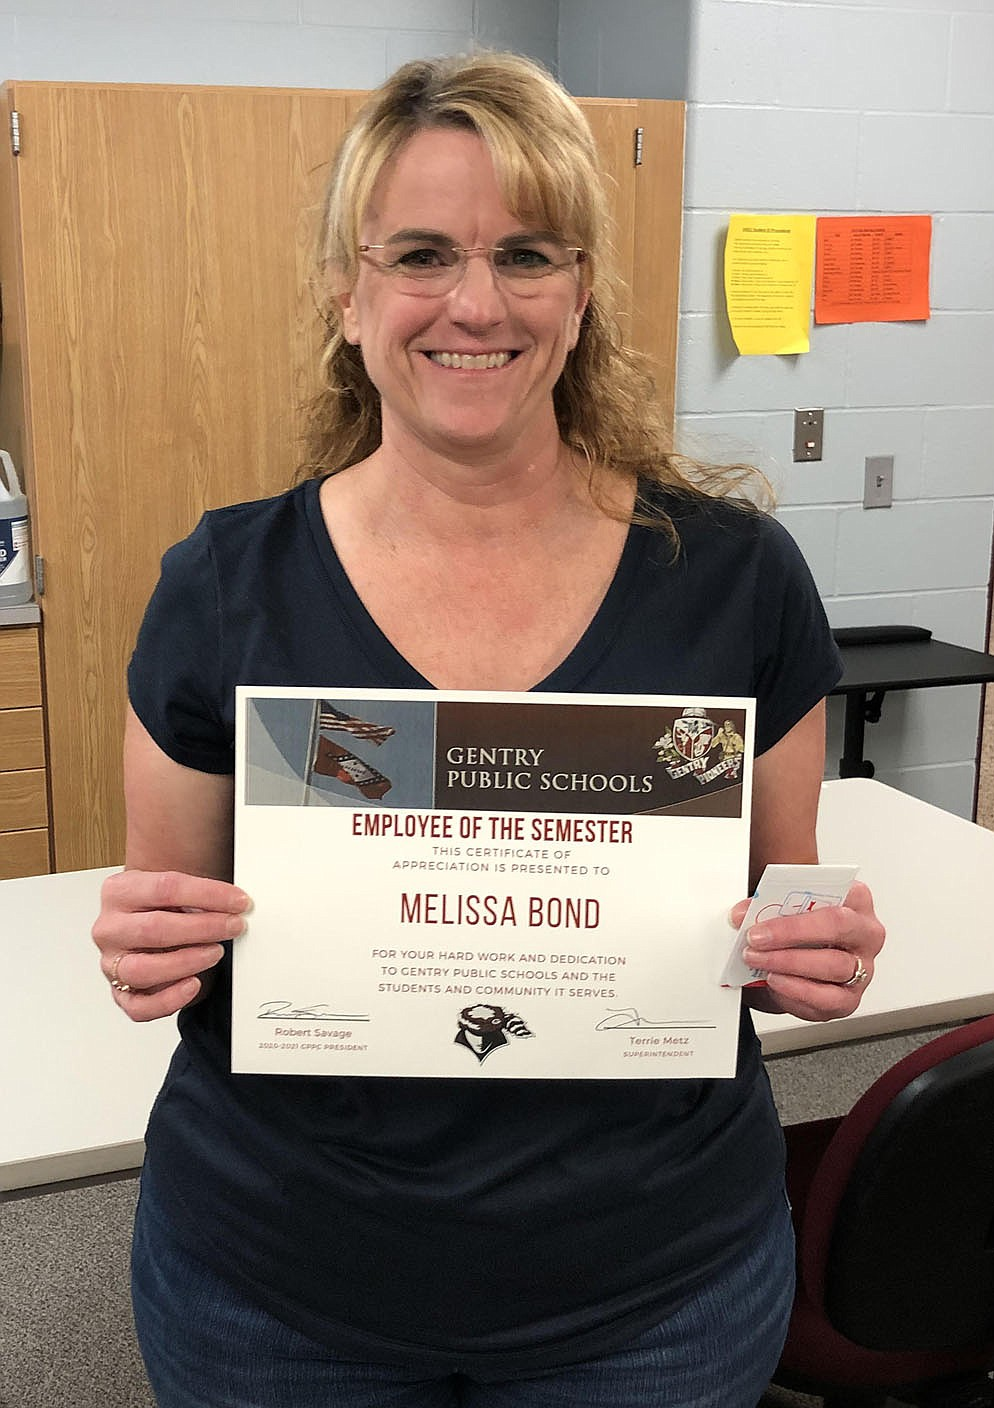 SUBMITTED Melissa Bond received a classified employee of the semester award for her work in the Gentry Public Schools.